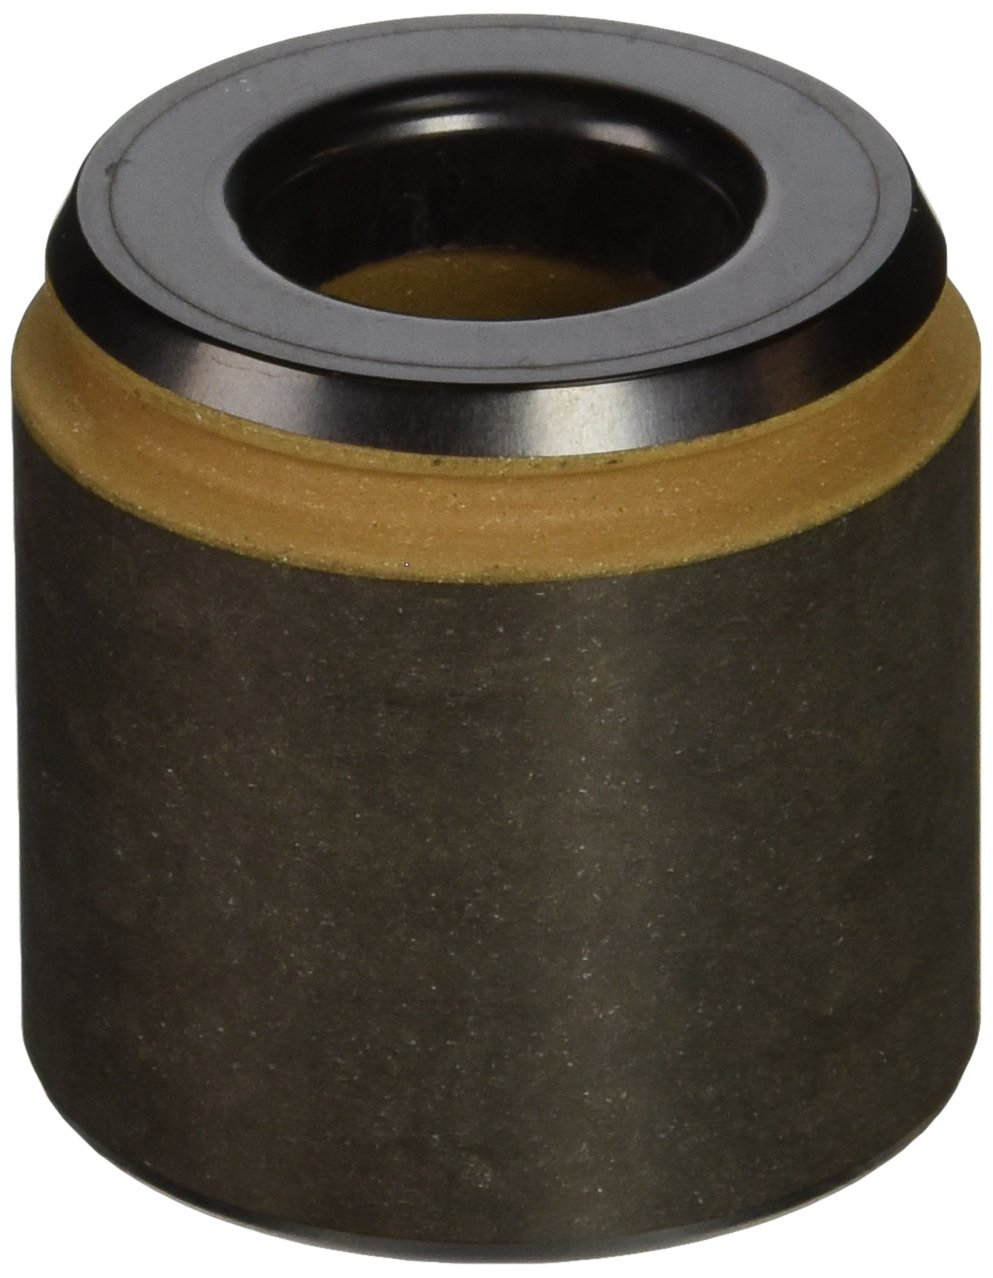 Centric 145.48011 Rear Brake Caliper Piston